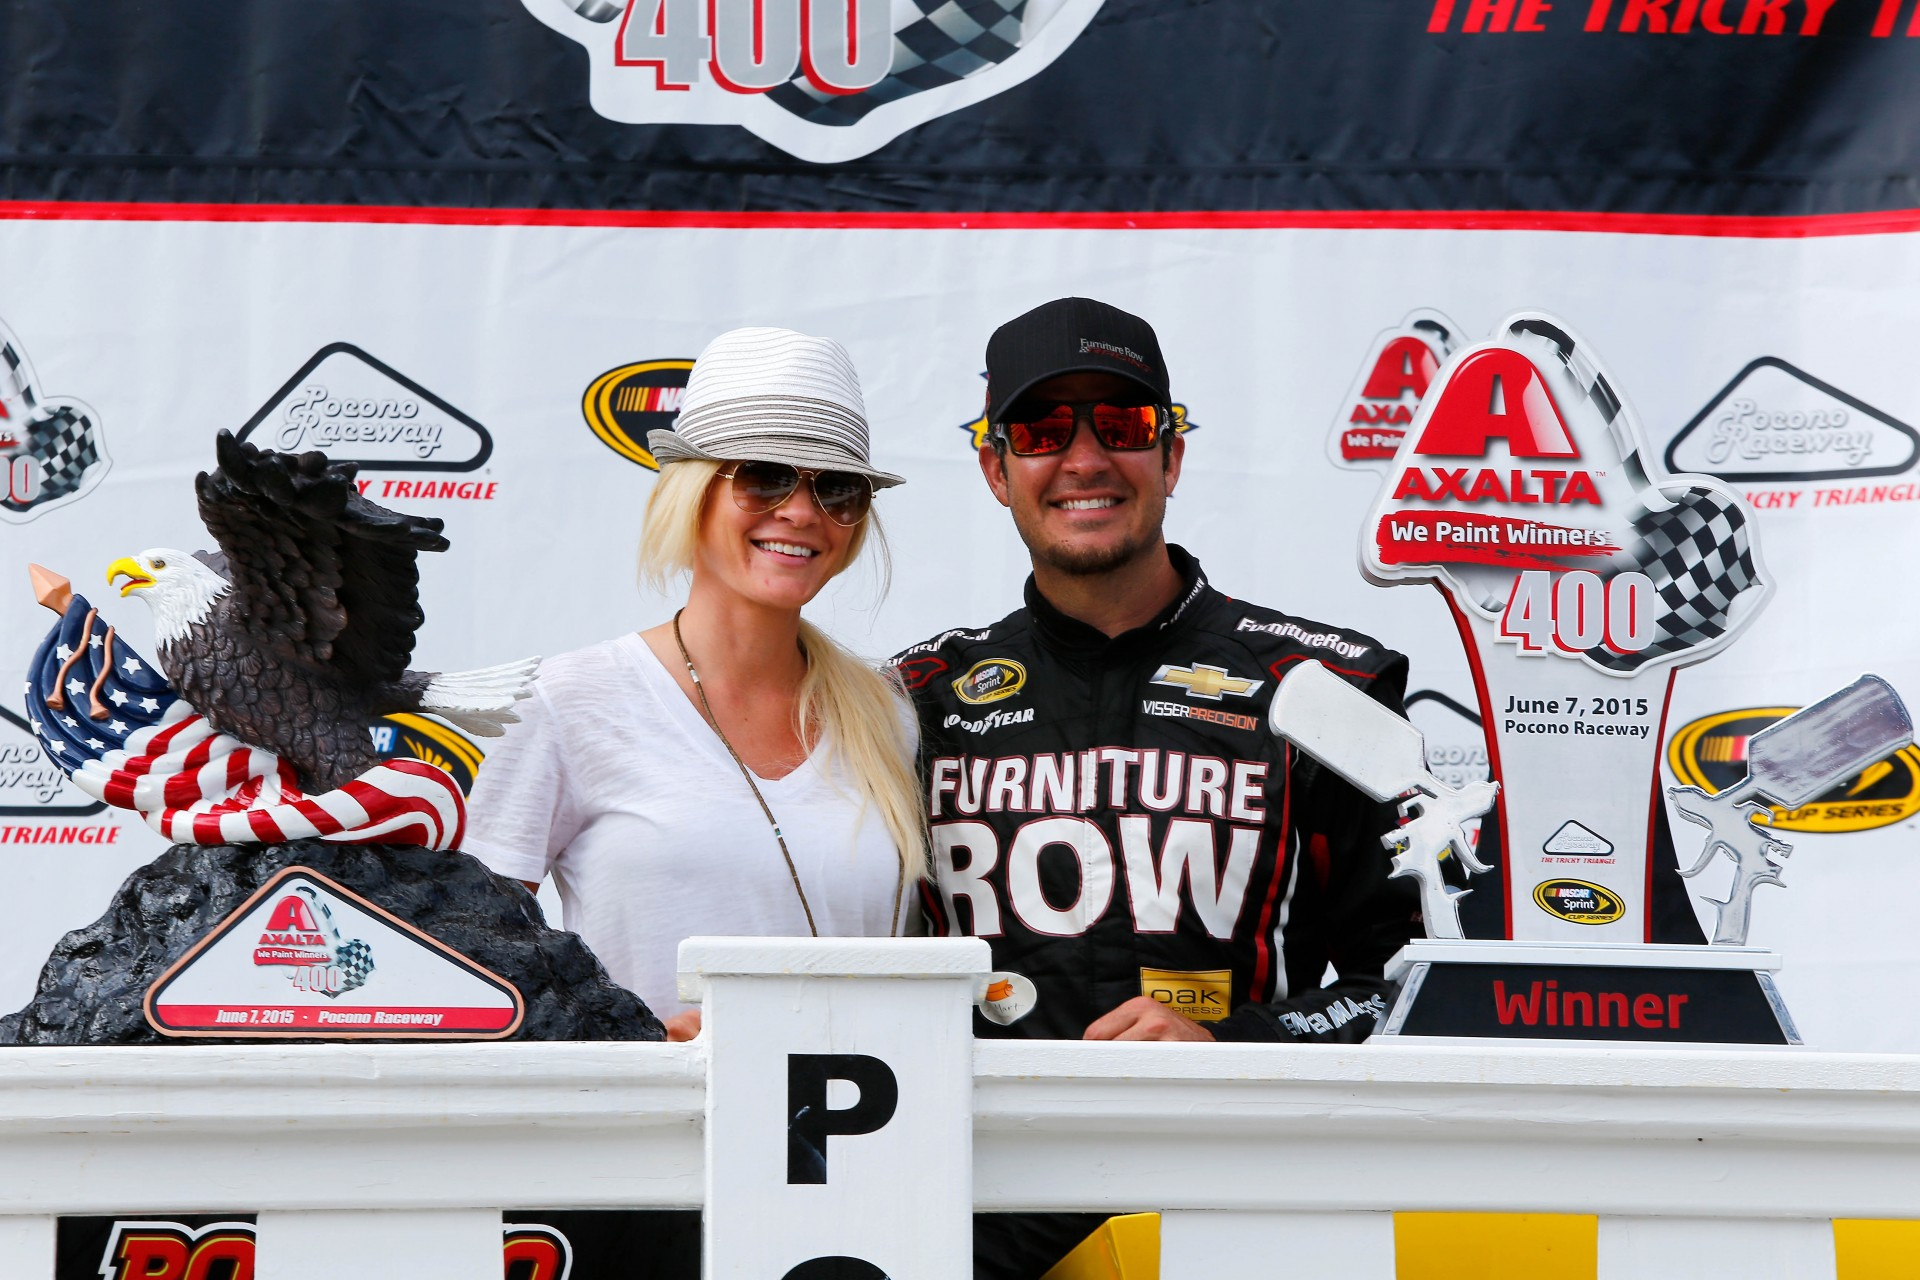 LONG POND, PA - JUNE 07:  Martin Truex Jr., driver of the #78 Furniture Row/Visser Precision Chevrolet, right, and his girlfriend, Sherry Pollex, pose in Victory Lane after Truex Jr. won the NASCAR Sprint Cup Series Axalta 'We Paint Winners' 400 at Pocono Raceway on June 7, 2015 in Long Pond, Pennsylvania.  (Photo by Jerry Markland/Getty Images)